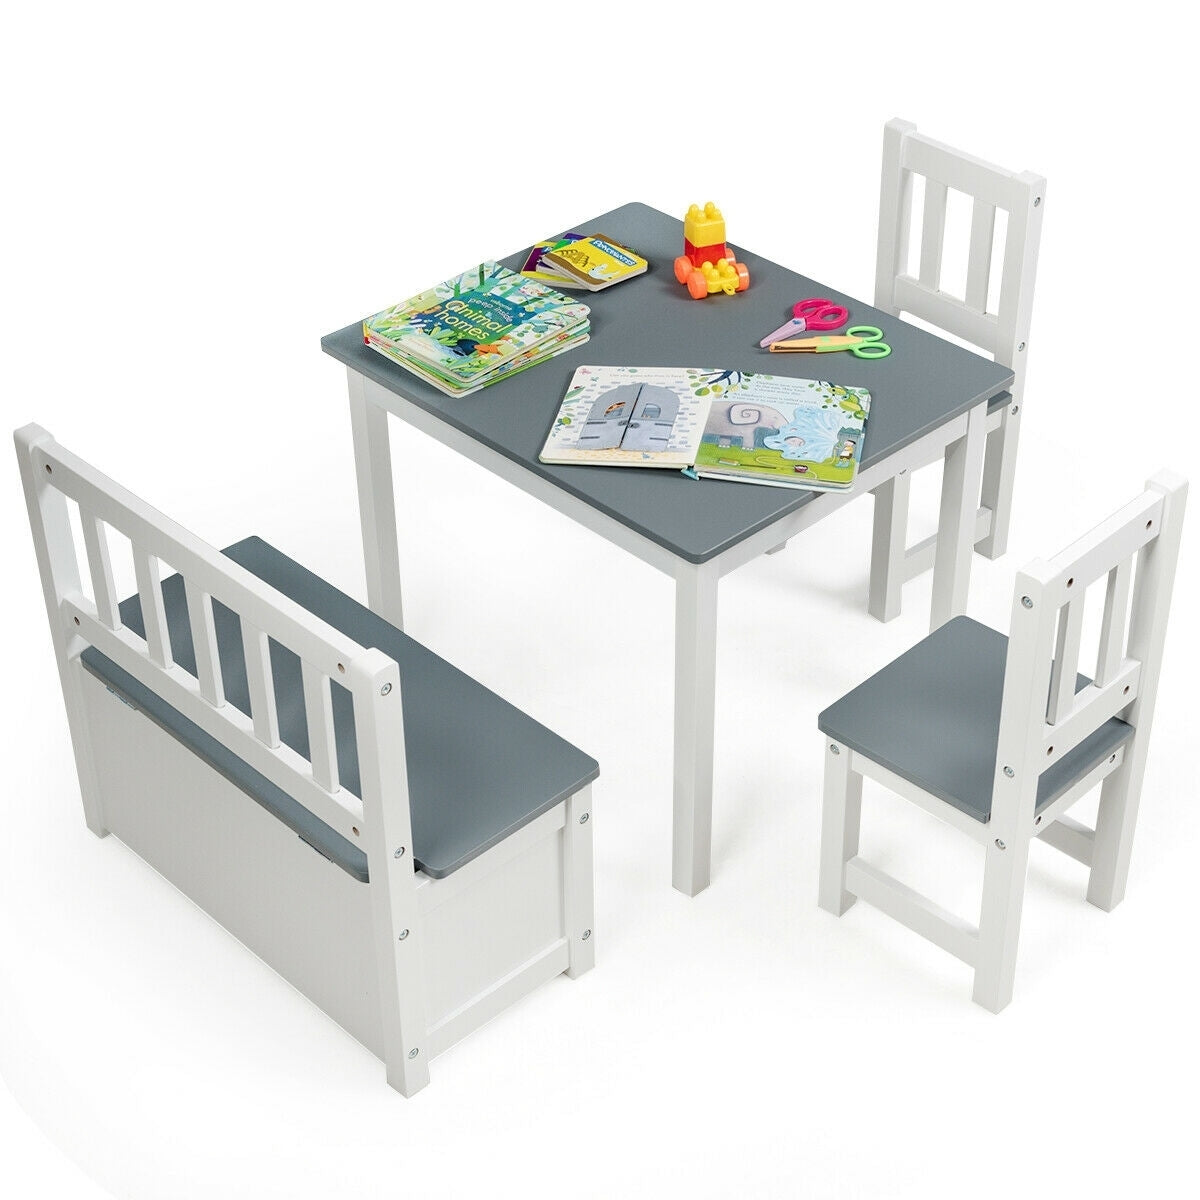 4 PCS Kids Wood Table Chairs Set -Gray - Color: Gray